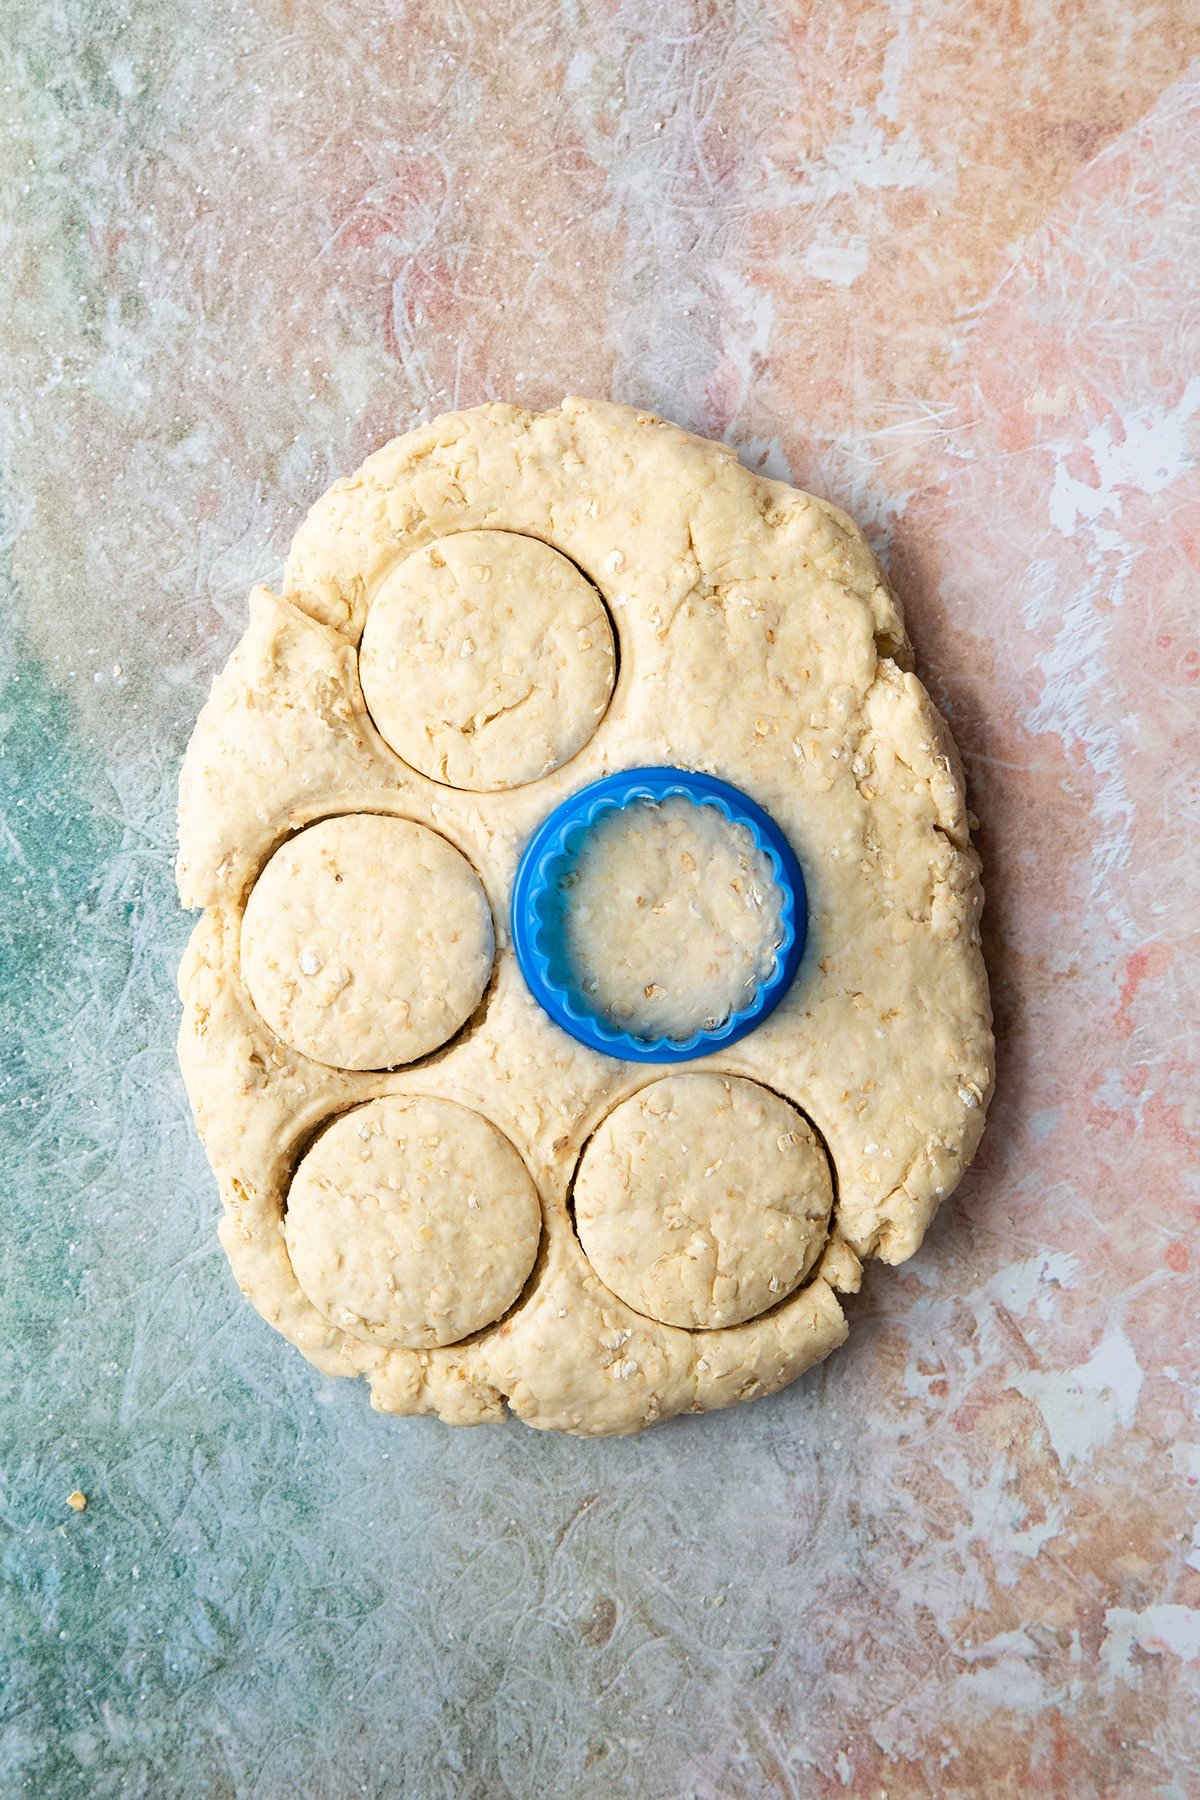 Oatmeal scone dough pressed to a thick slab. Some rounds have been cut out using a blue cookie cutter.